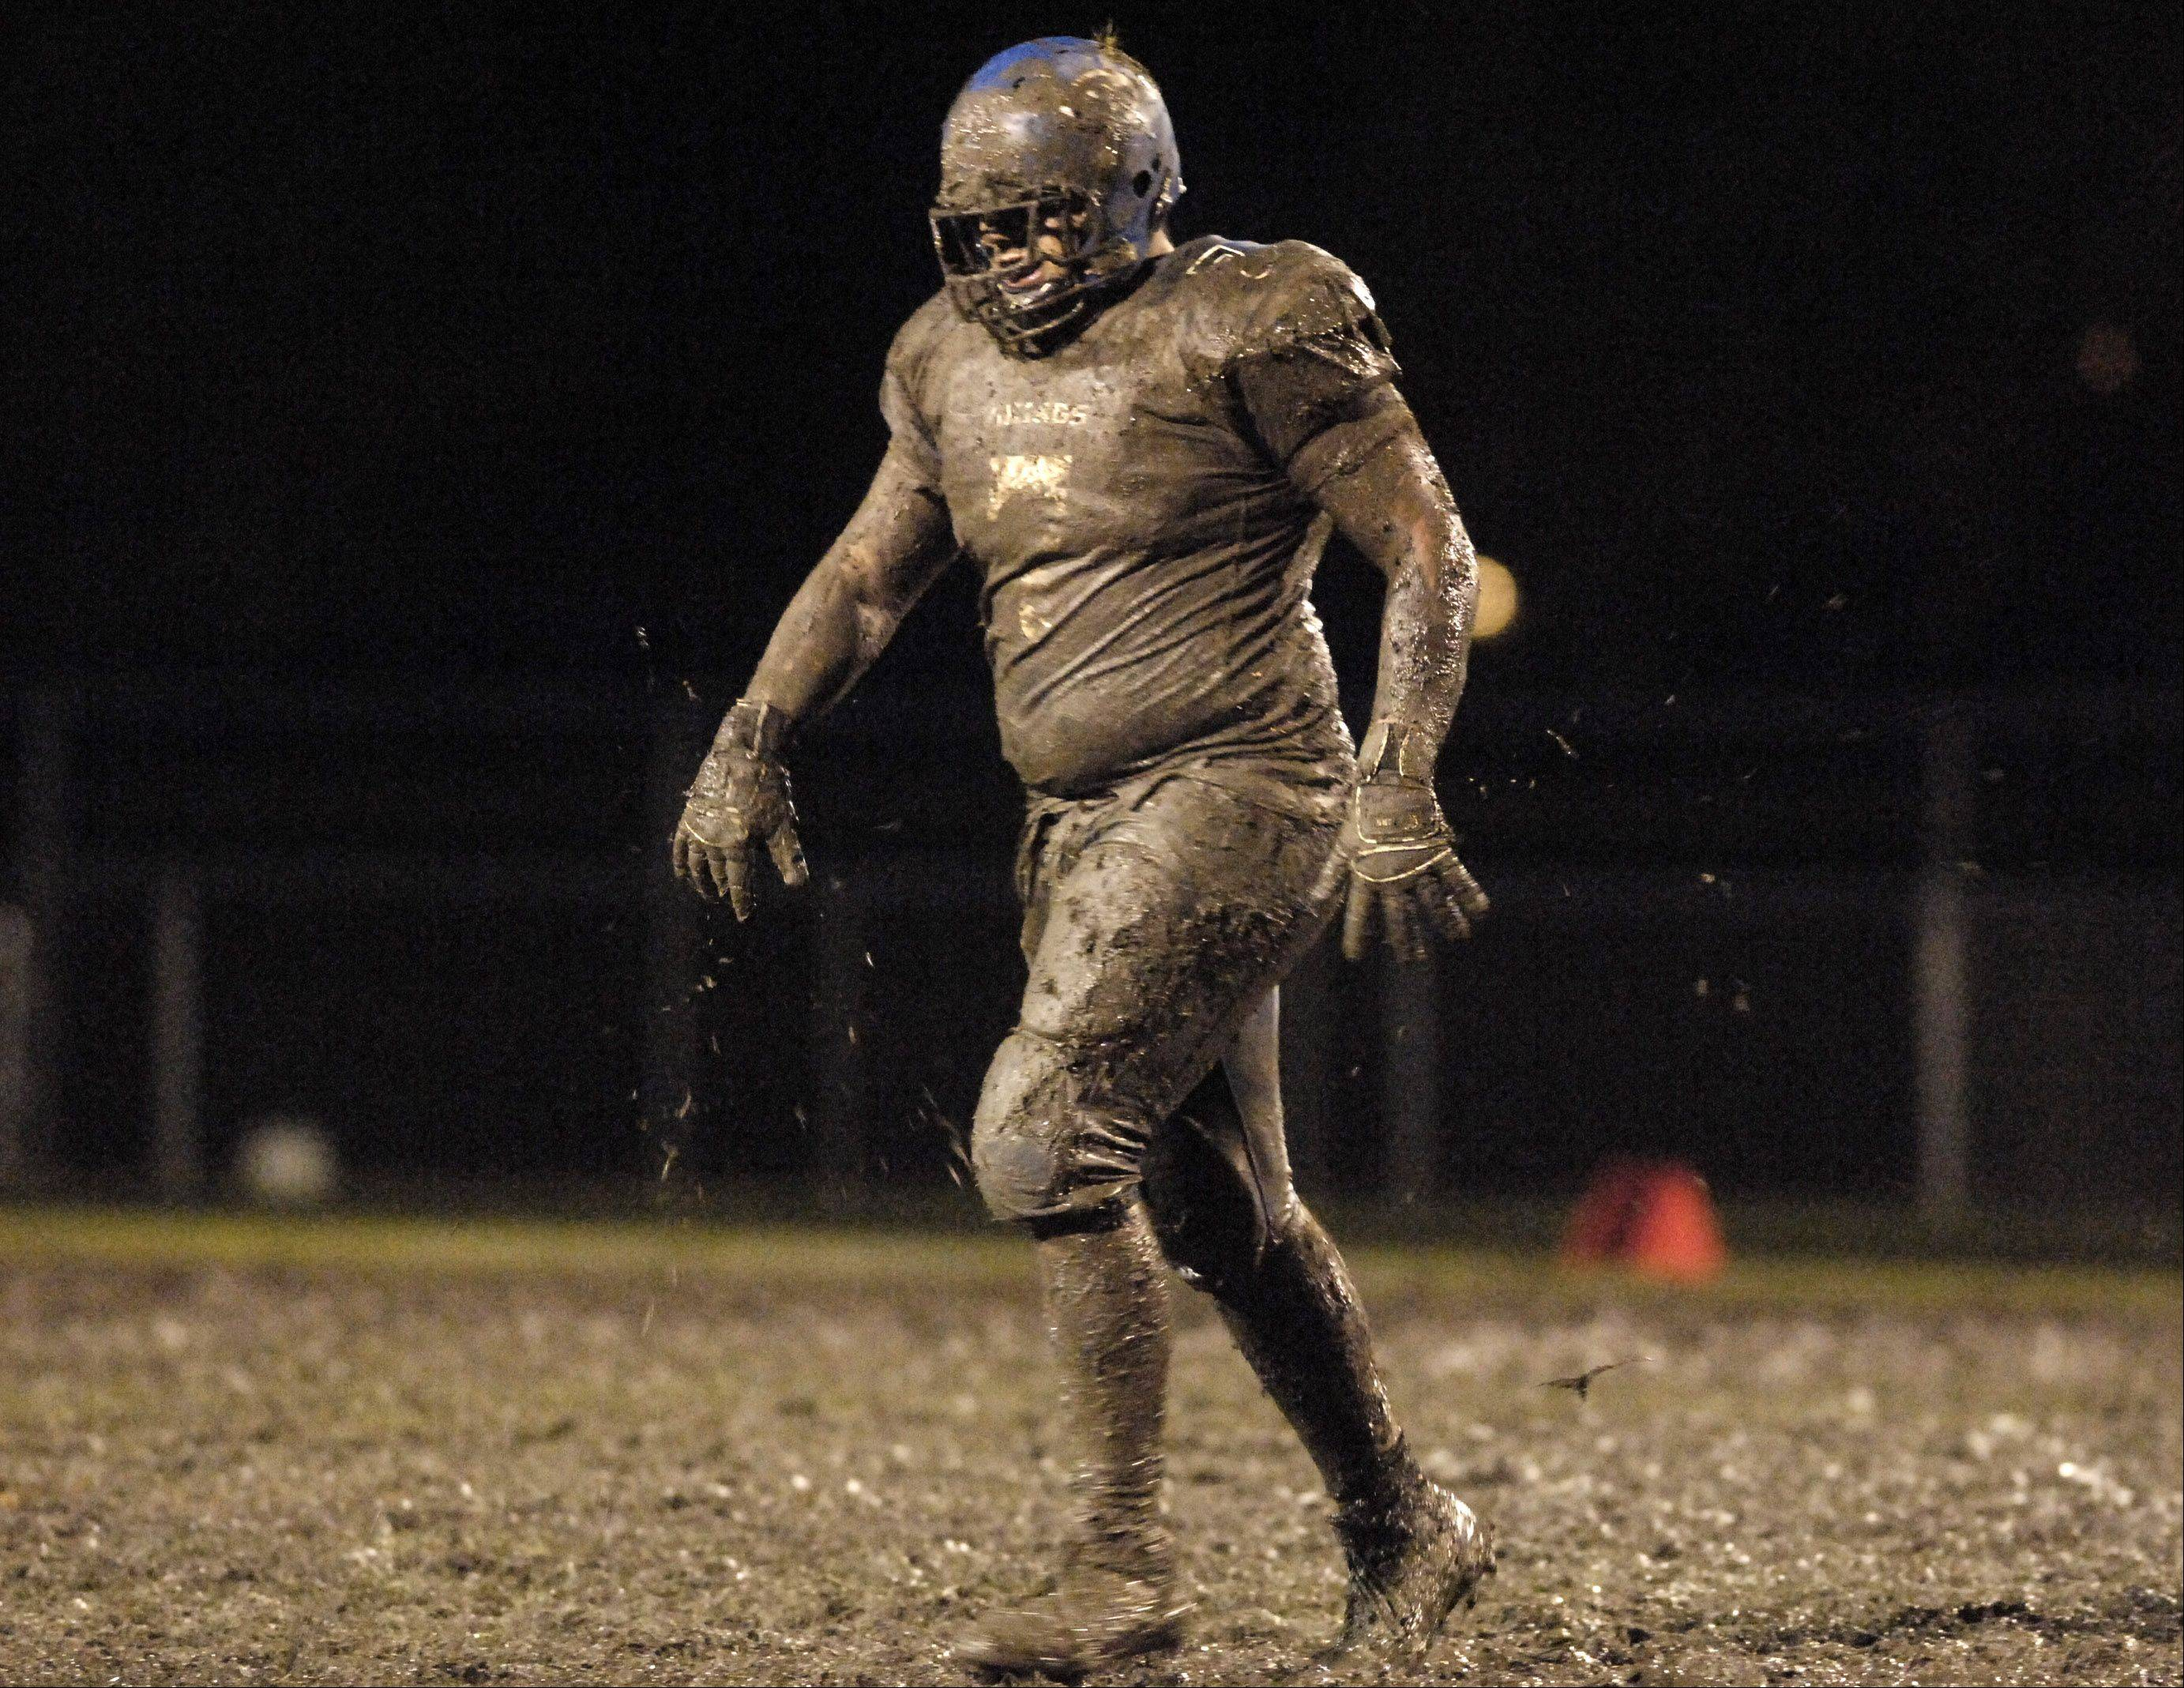 A Geneva Viking shakes mud off as he comes off Burgess Field during a game in 2009. Sights like this will likely become a thing of the past, as the Geneva school district advances plans to replace the field with artificial turf.